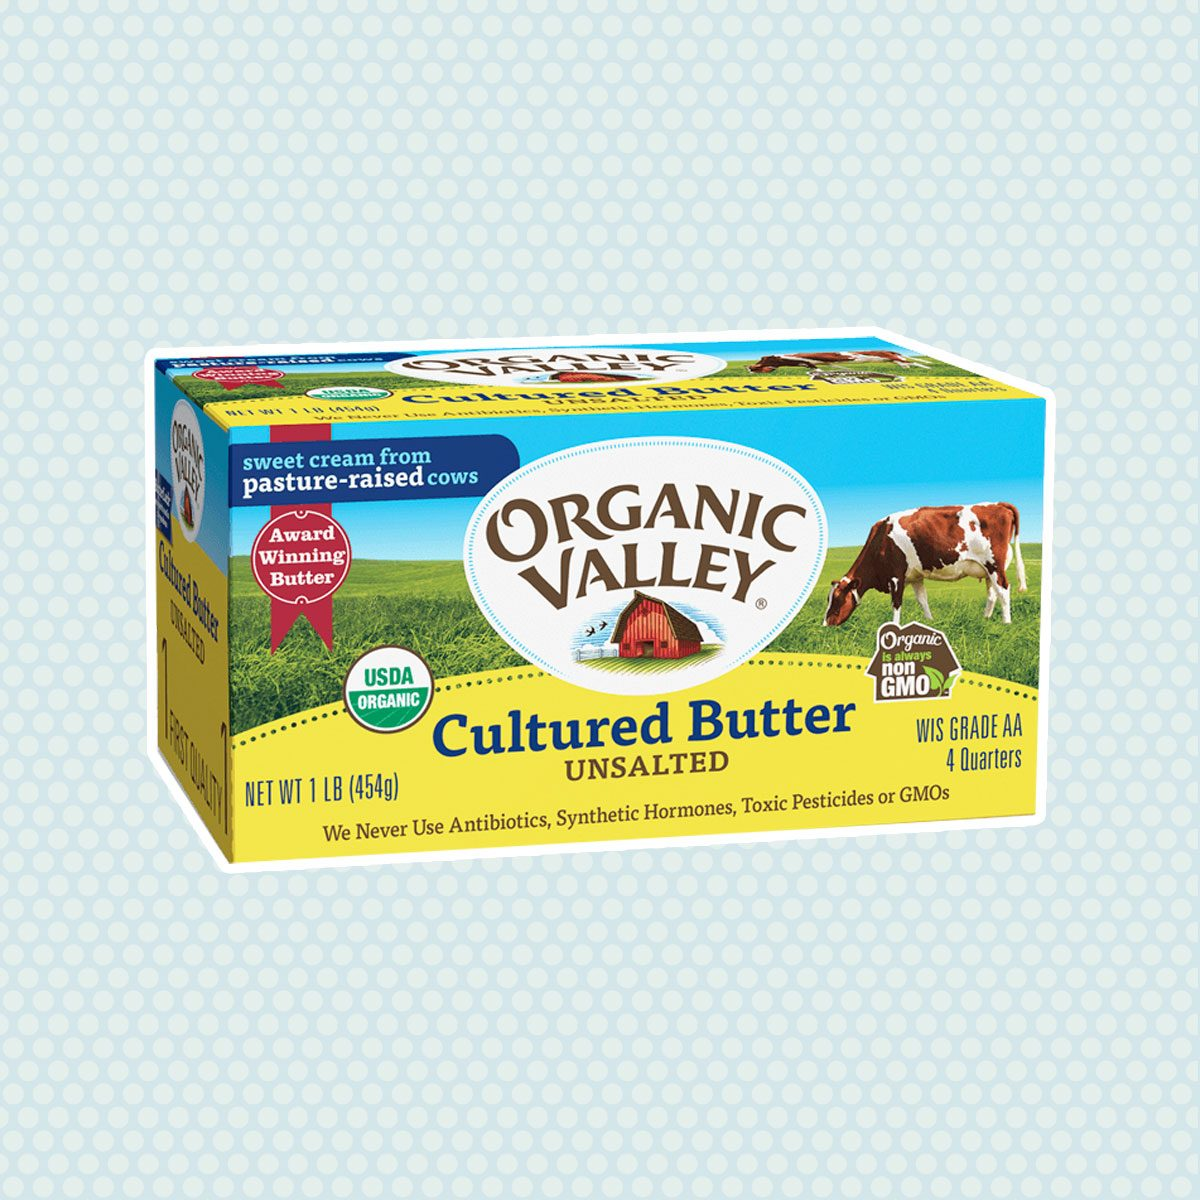 Cultured Unsalted Butter, 1 lb, 4 quarters